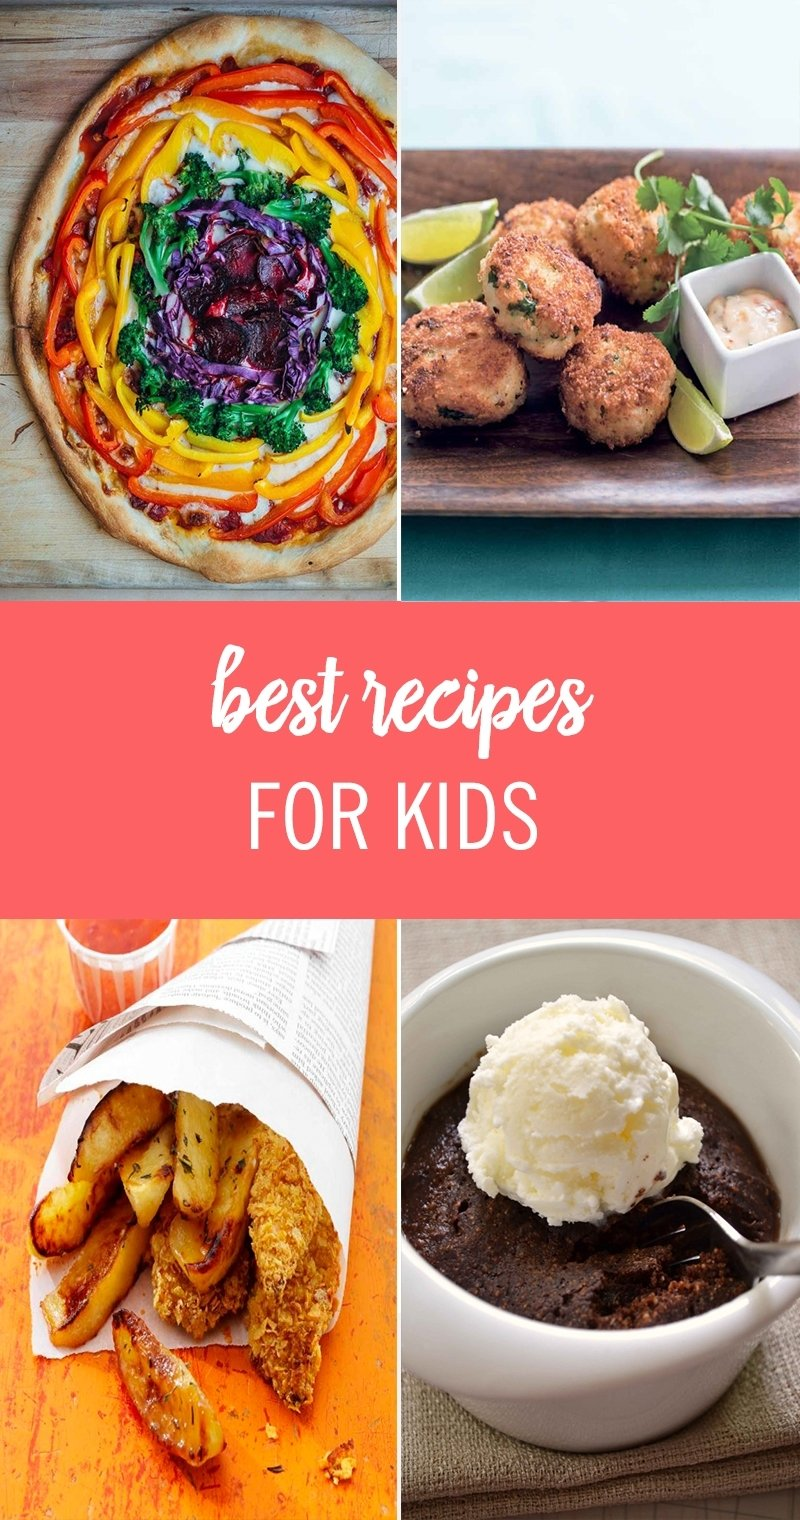 10 Stylish Easy Meal Ideas For Toddlers cooking for kids 50 best recipes for kids and picky eaters 28 2020